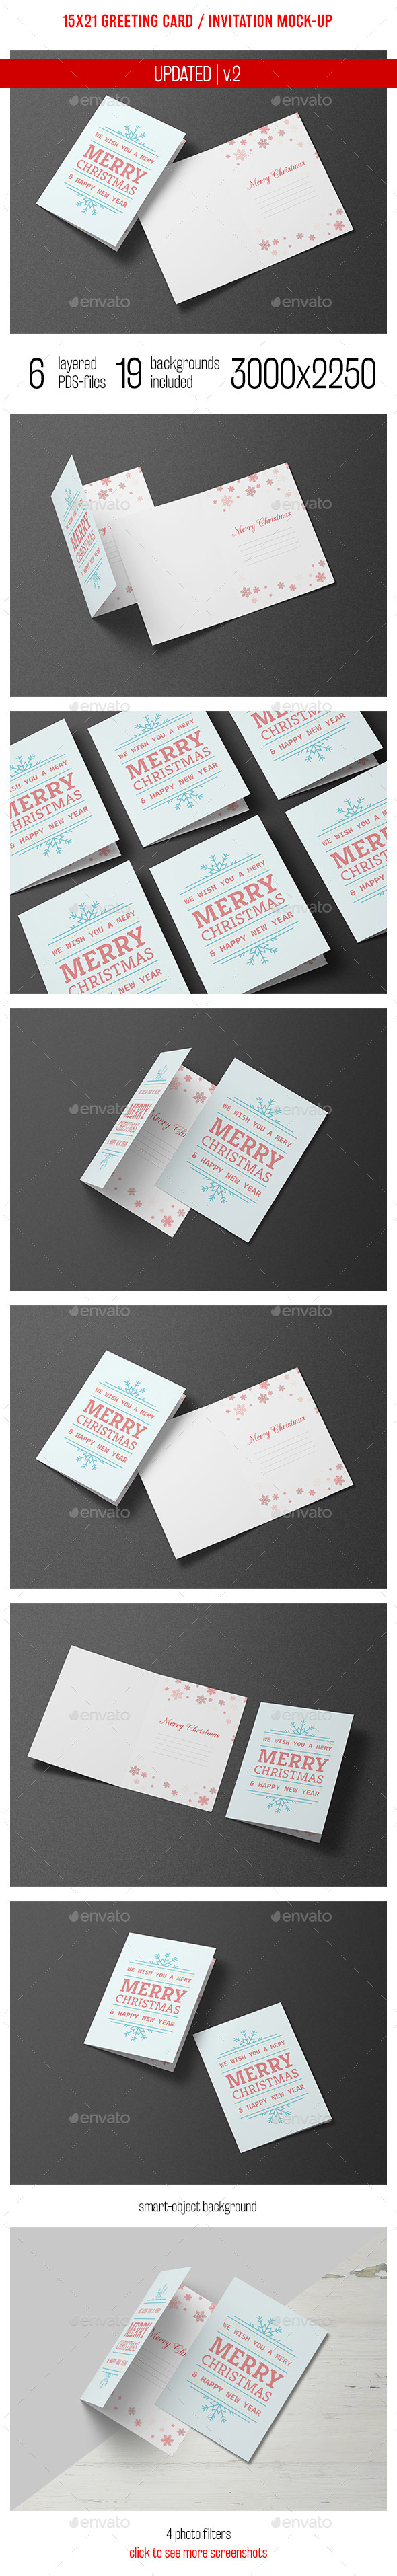 Greeting Card and Invitation Mock-up - Miscellaneous Print